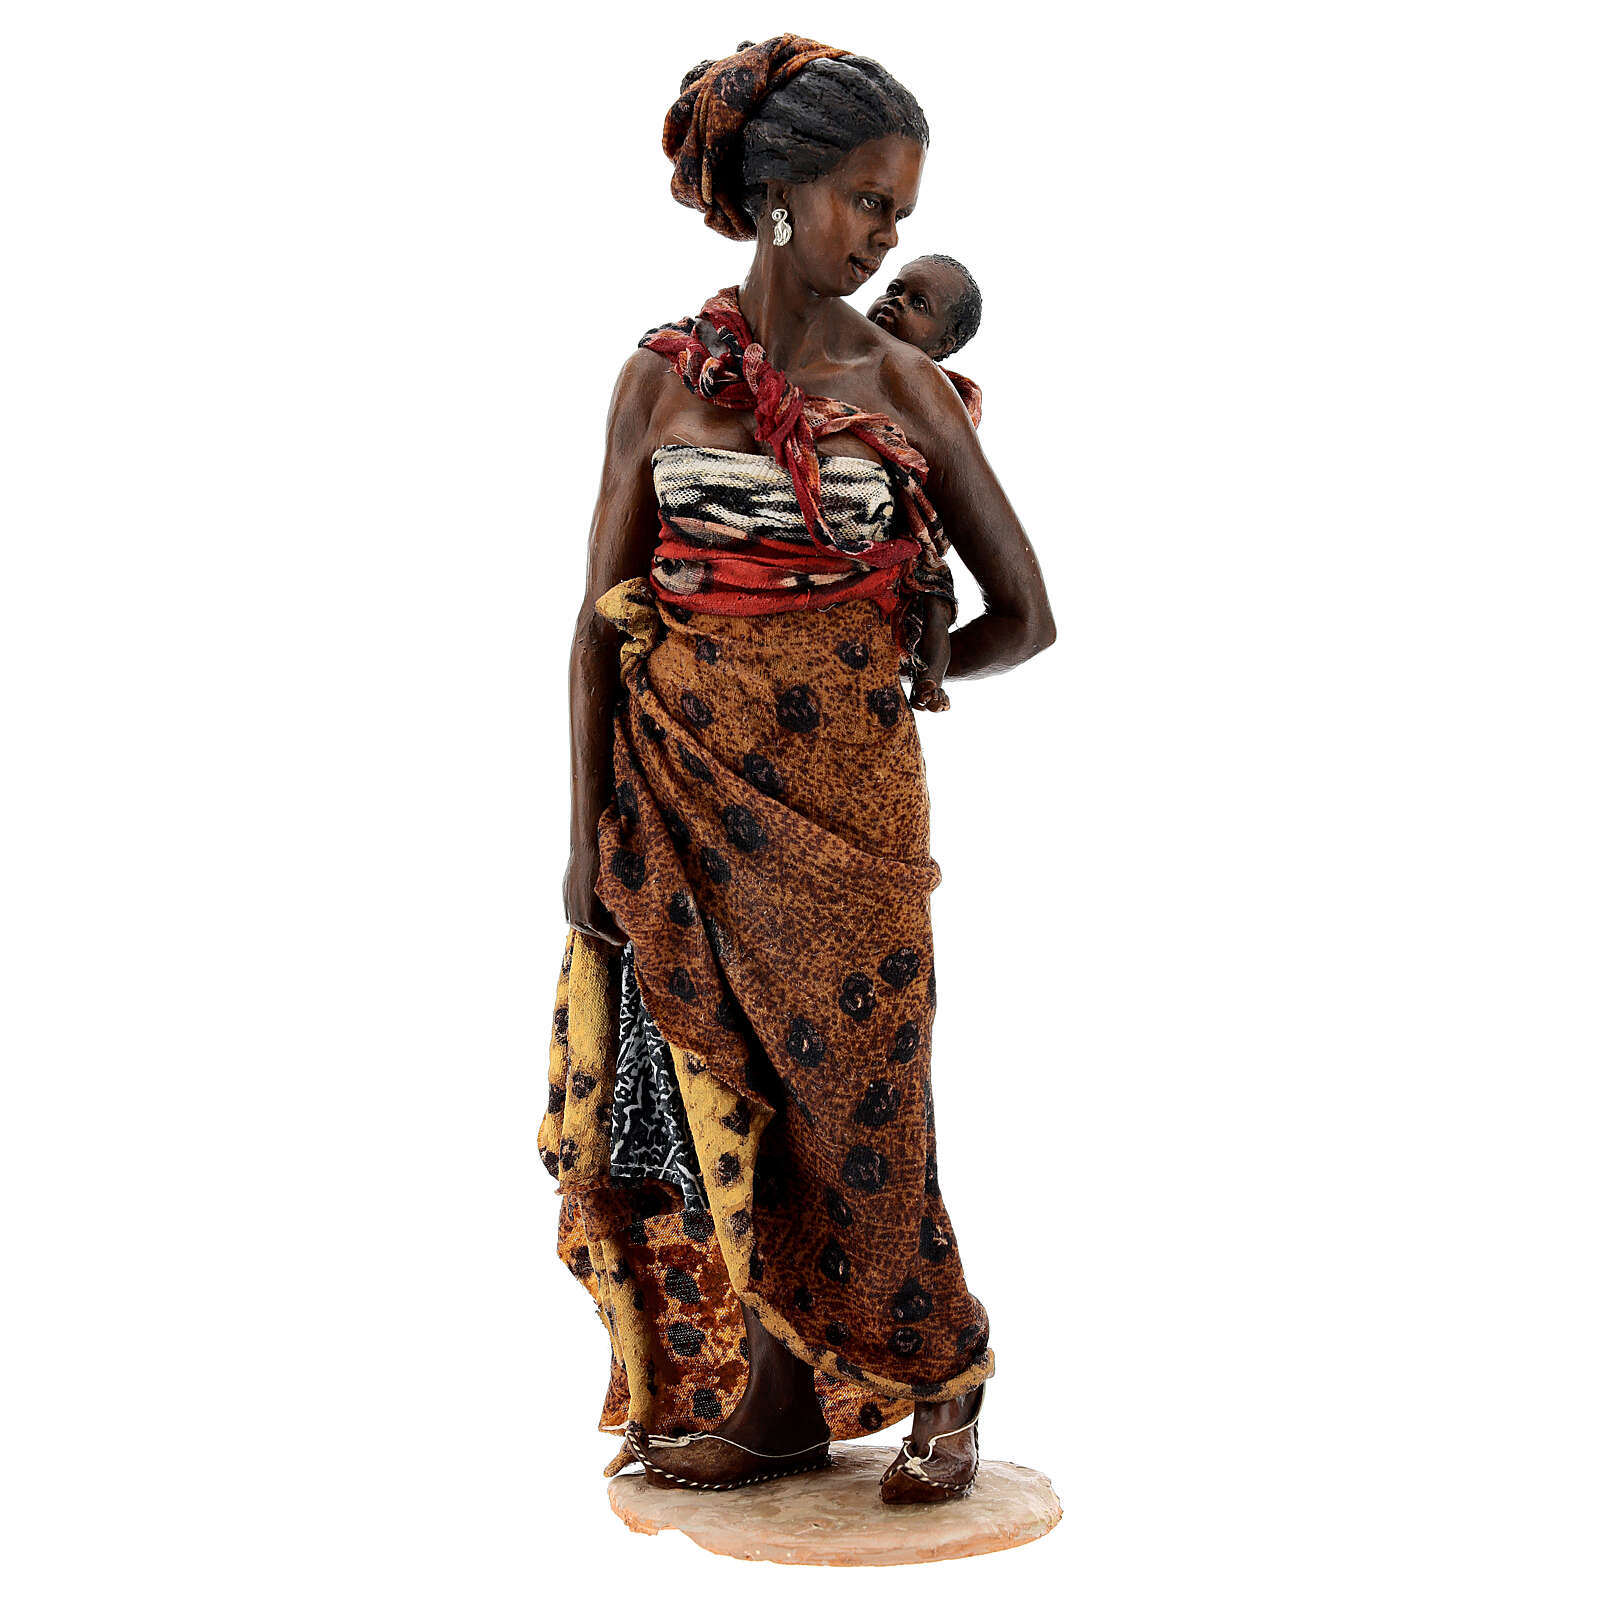 Moor woman with child in arms, 30 cm Tripi 4